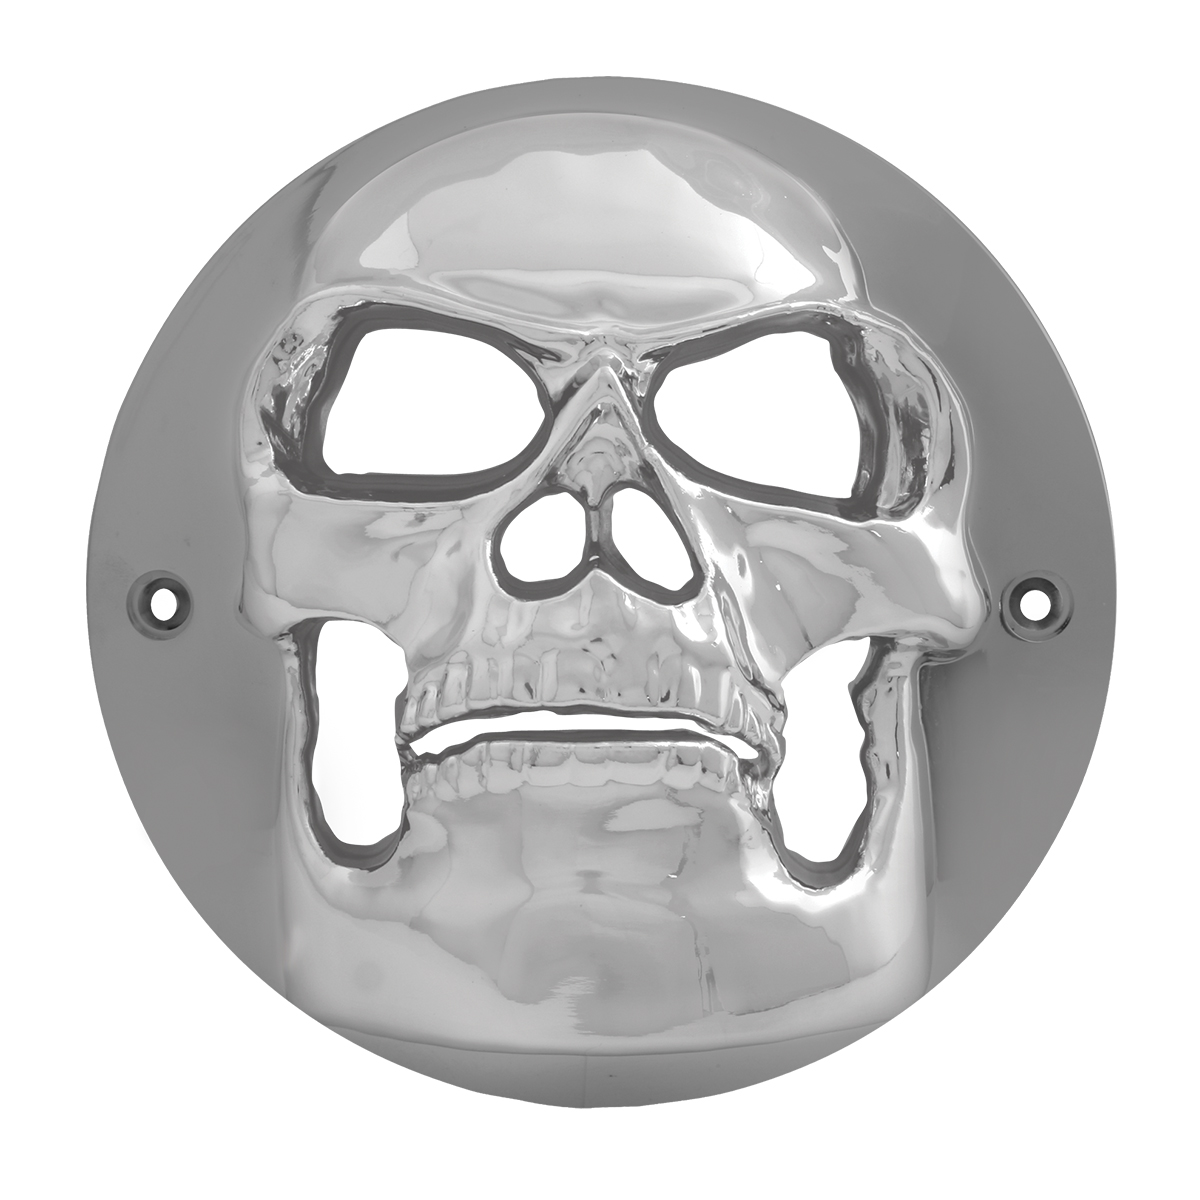 "90090 Chrome Plastic Skull Bezel for 4"" Round Light"